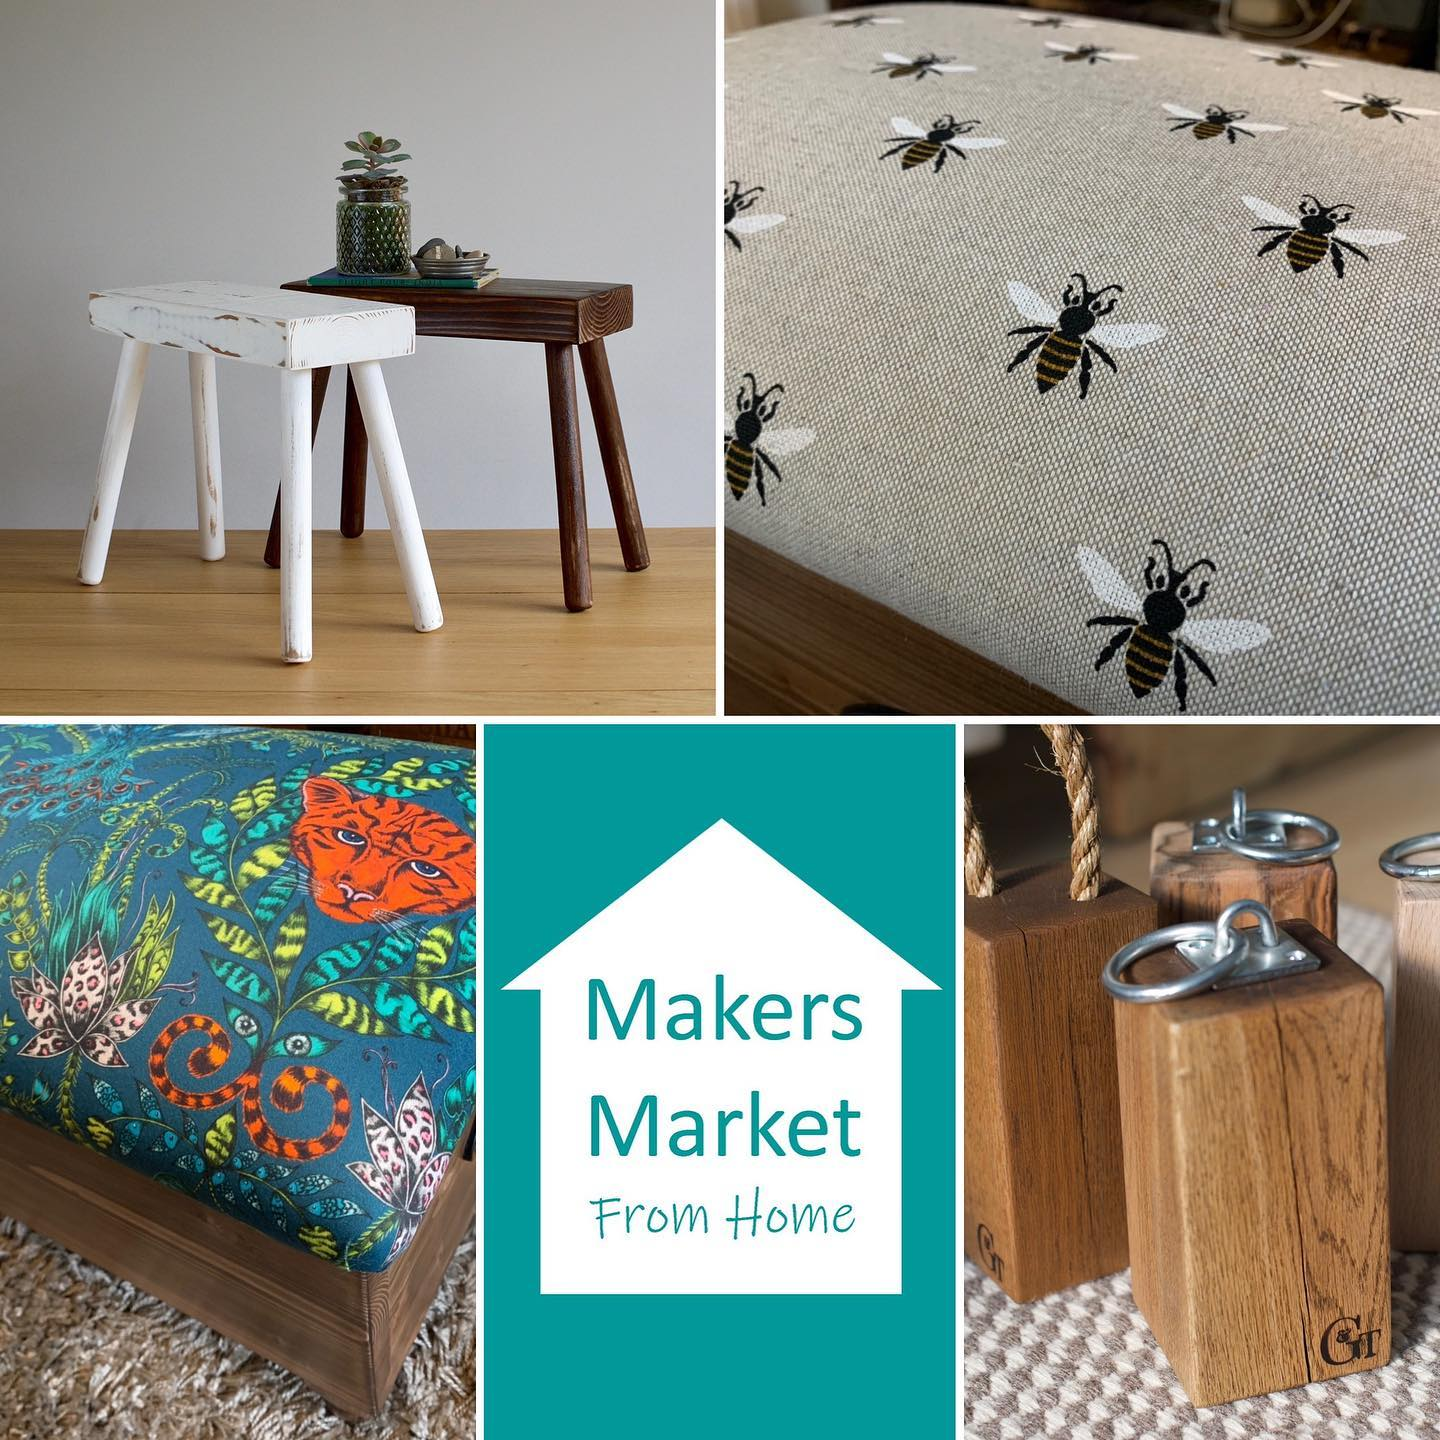 Log into Instagram from 10am and @makersmarketfromhome where you'll see their live video feed with guest makers including us! 😬 we'll be chatting to Andy sometime between 10am and 10.15am. Really excited to be a part of this incredible virtual market! ...#makersmarketfromhome #virtualmarket #makers #smallbusinesses #craft #home #marketday #bankholidayweekend